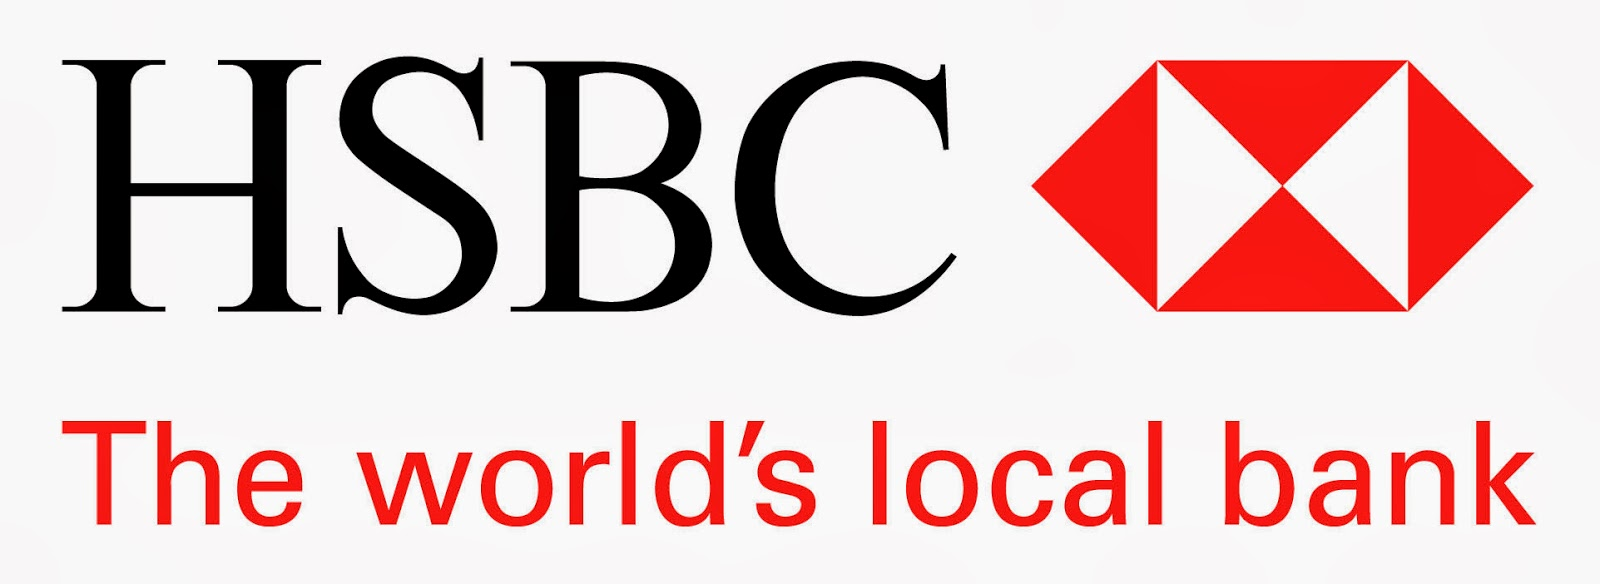 The world's local bank.